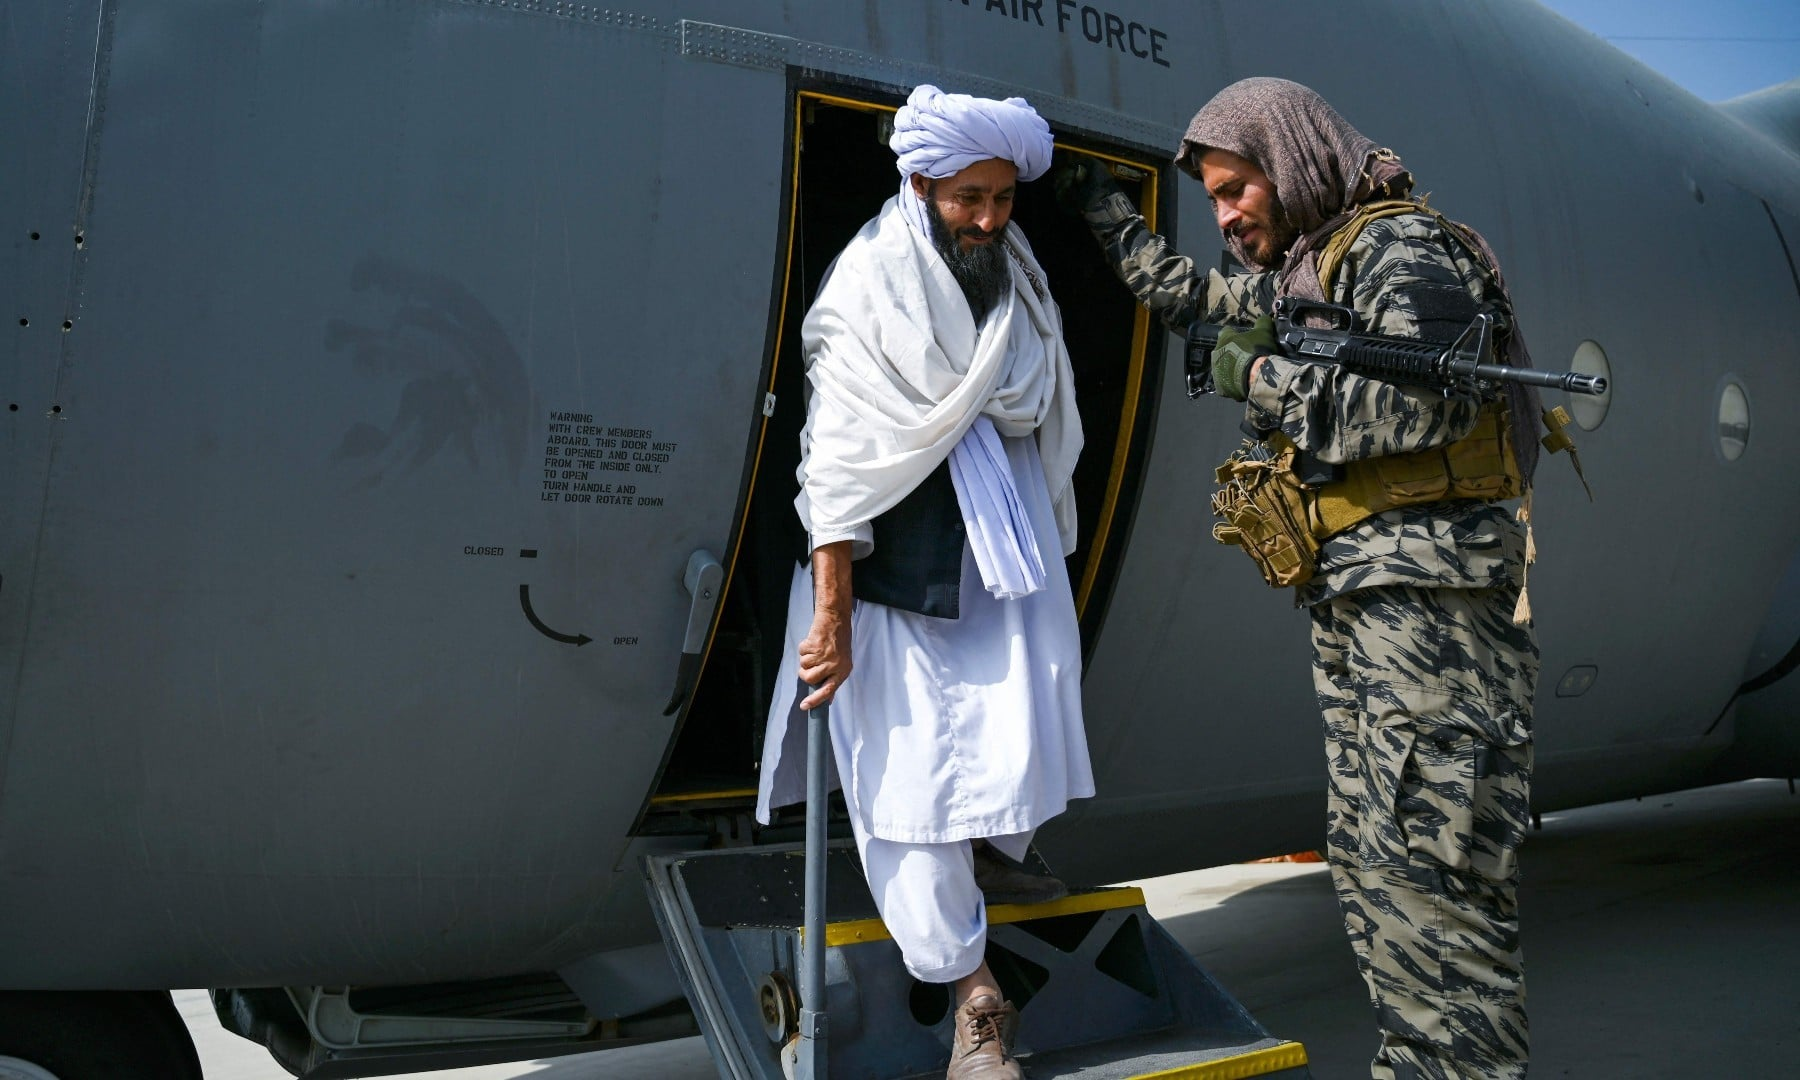 A member of the Taliban (C) walks out of an Afghan Air Force aircraft at the airport in Kabul on August 31. — AFP